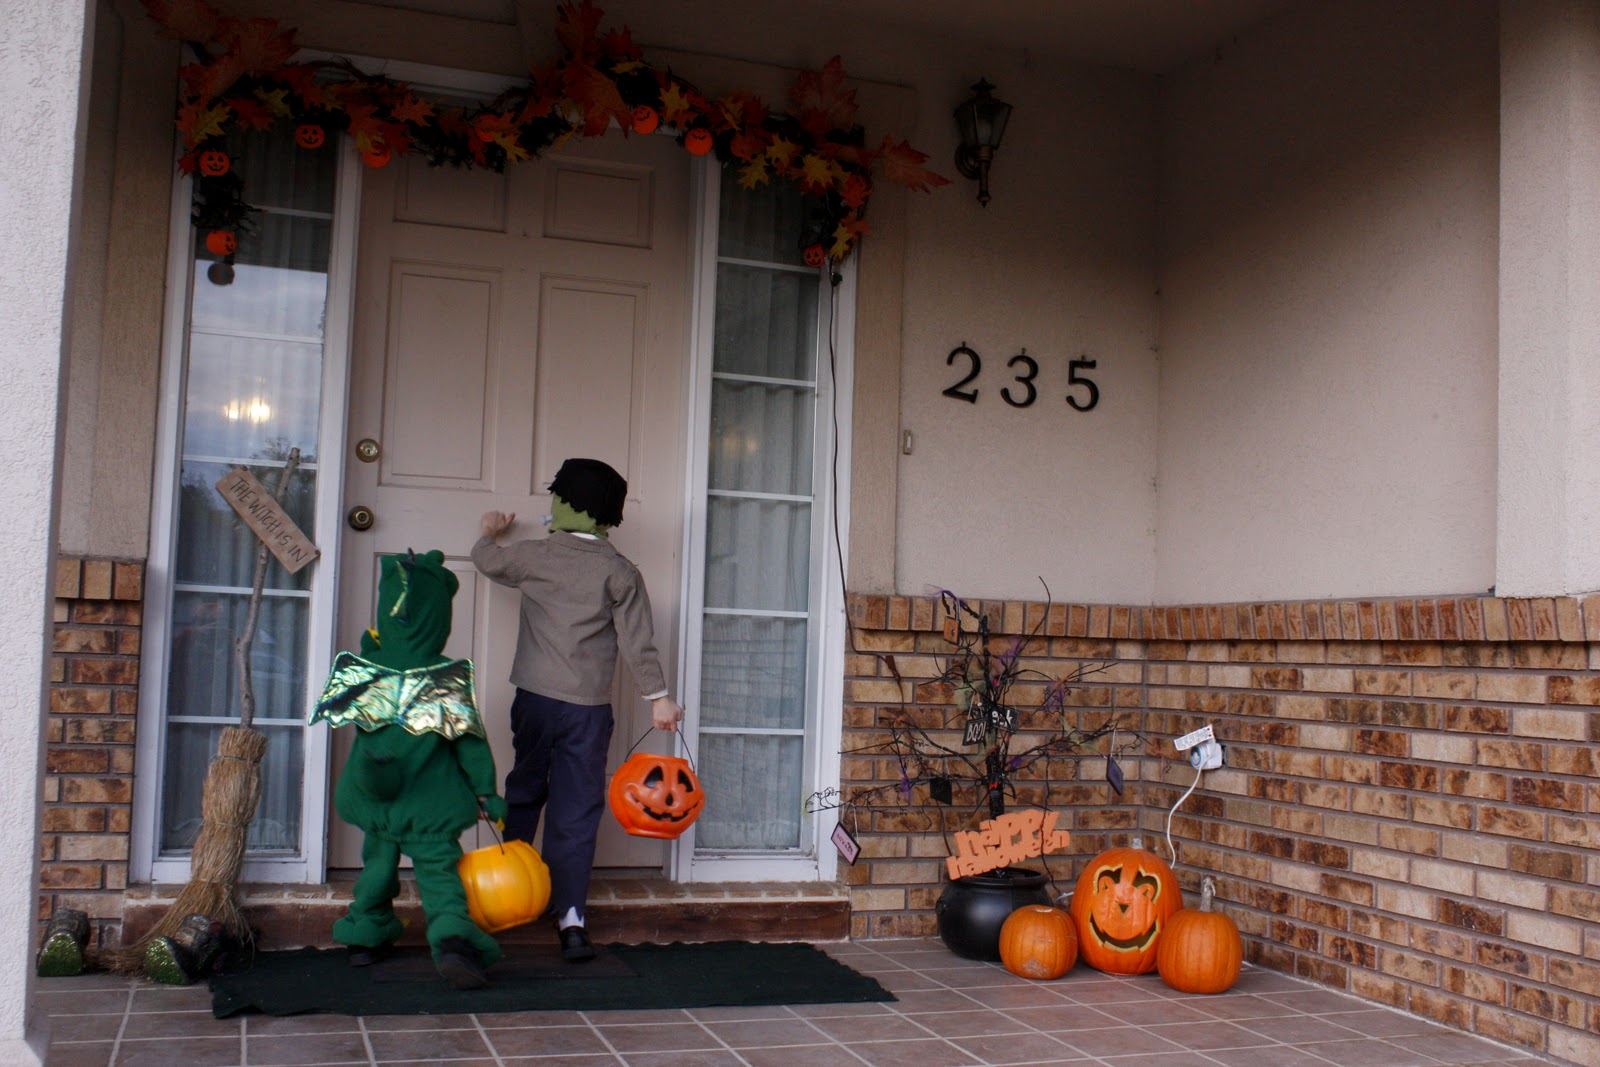 Trick-or-treating kids